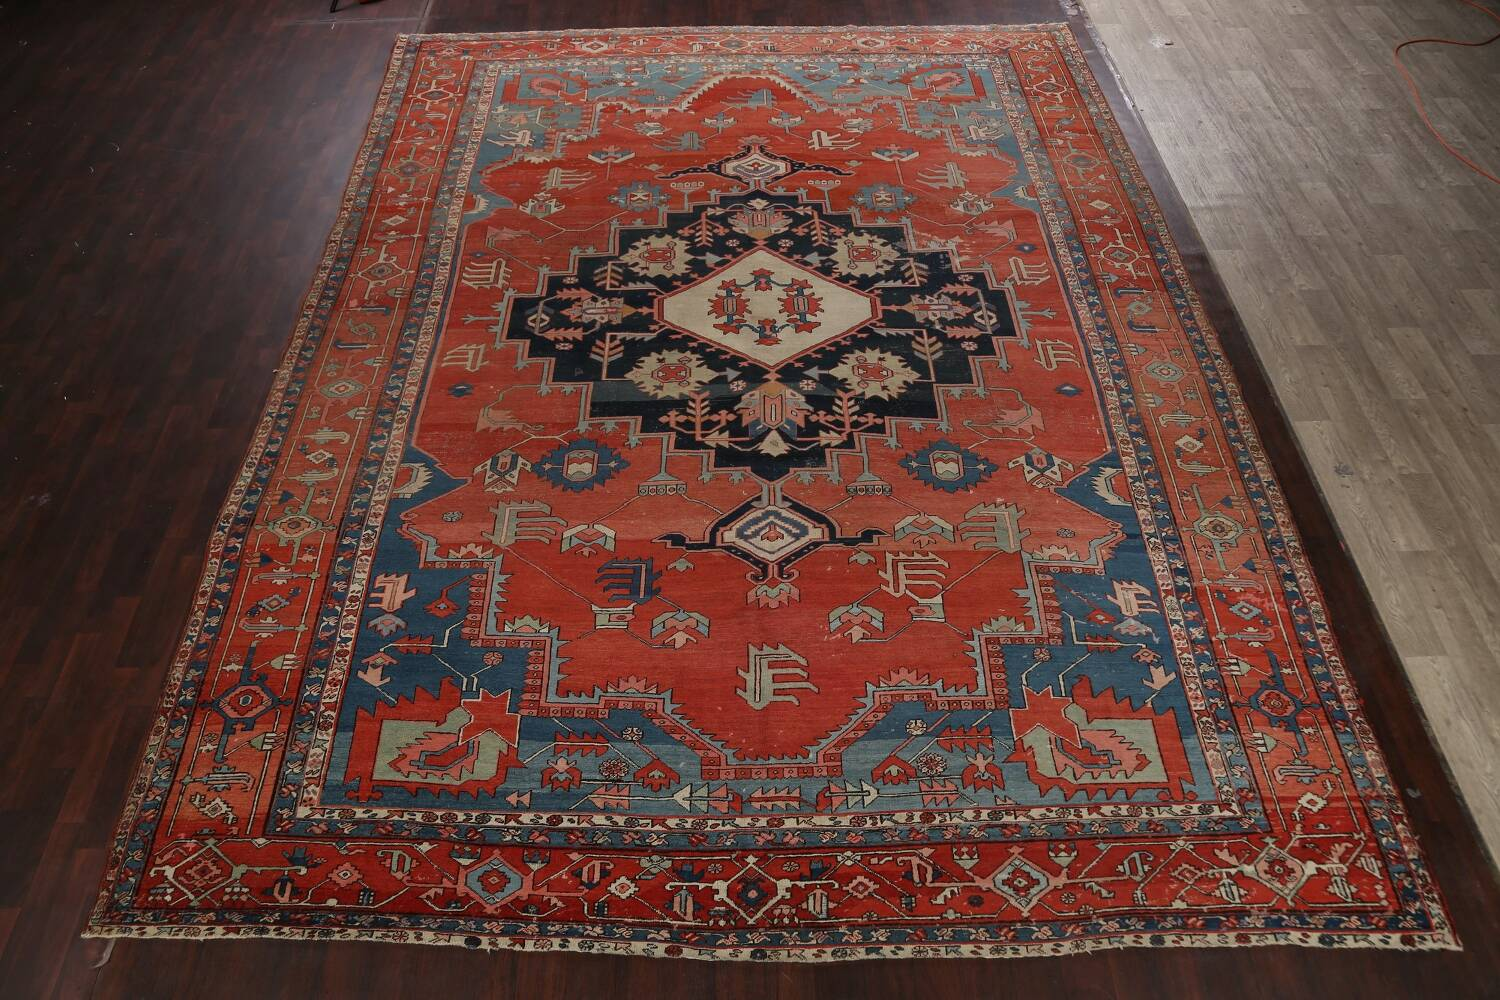 Pre-1900 Antique Heriz Serapi Vegetable Dye Persian Rug 12x16 image 2